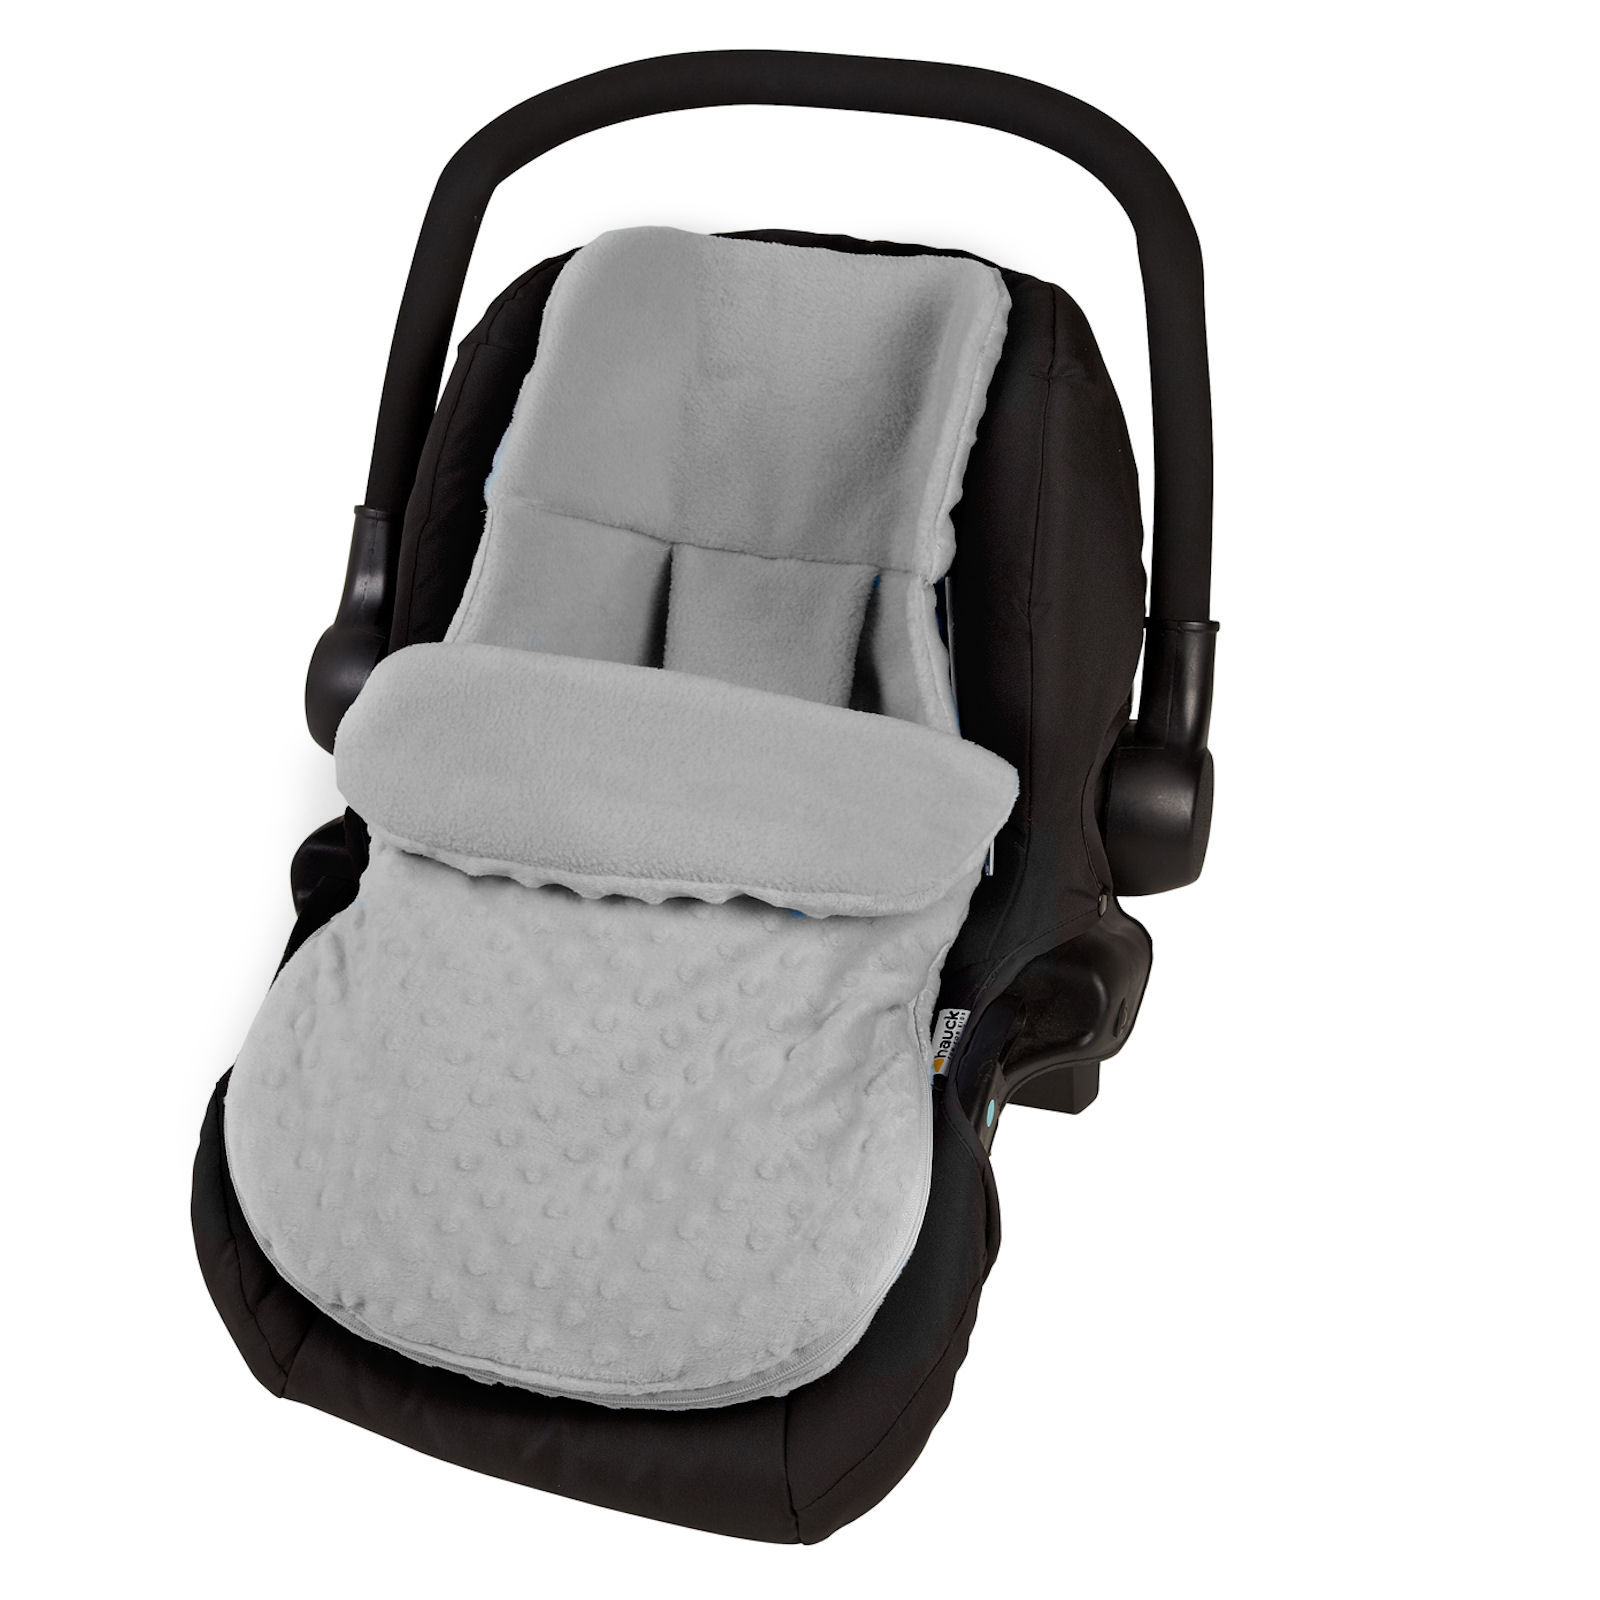 4Baby Car Seat Foot - Dimple Grey | Buy at Online4baby